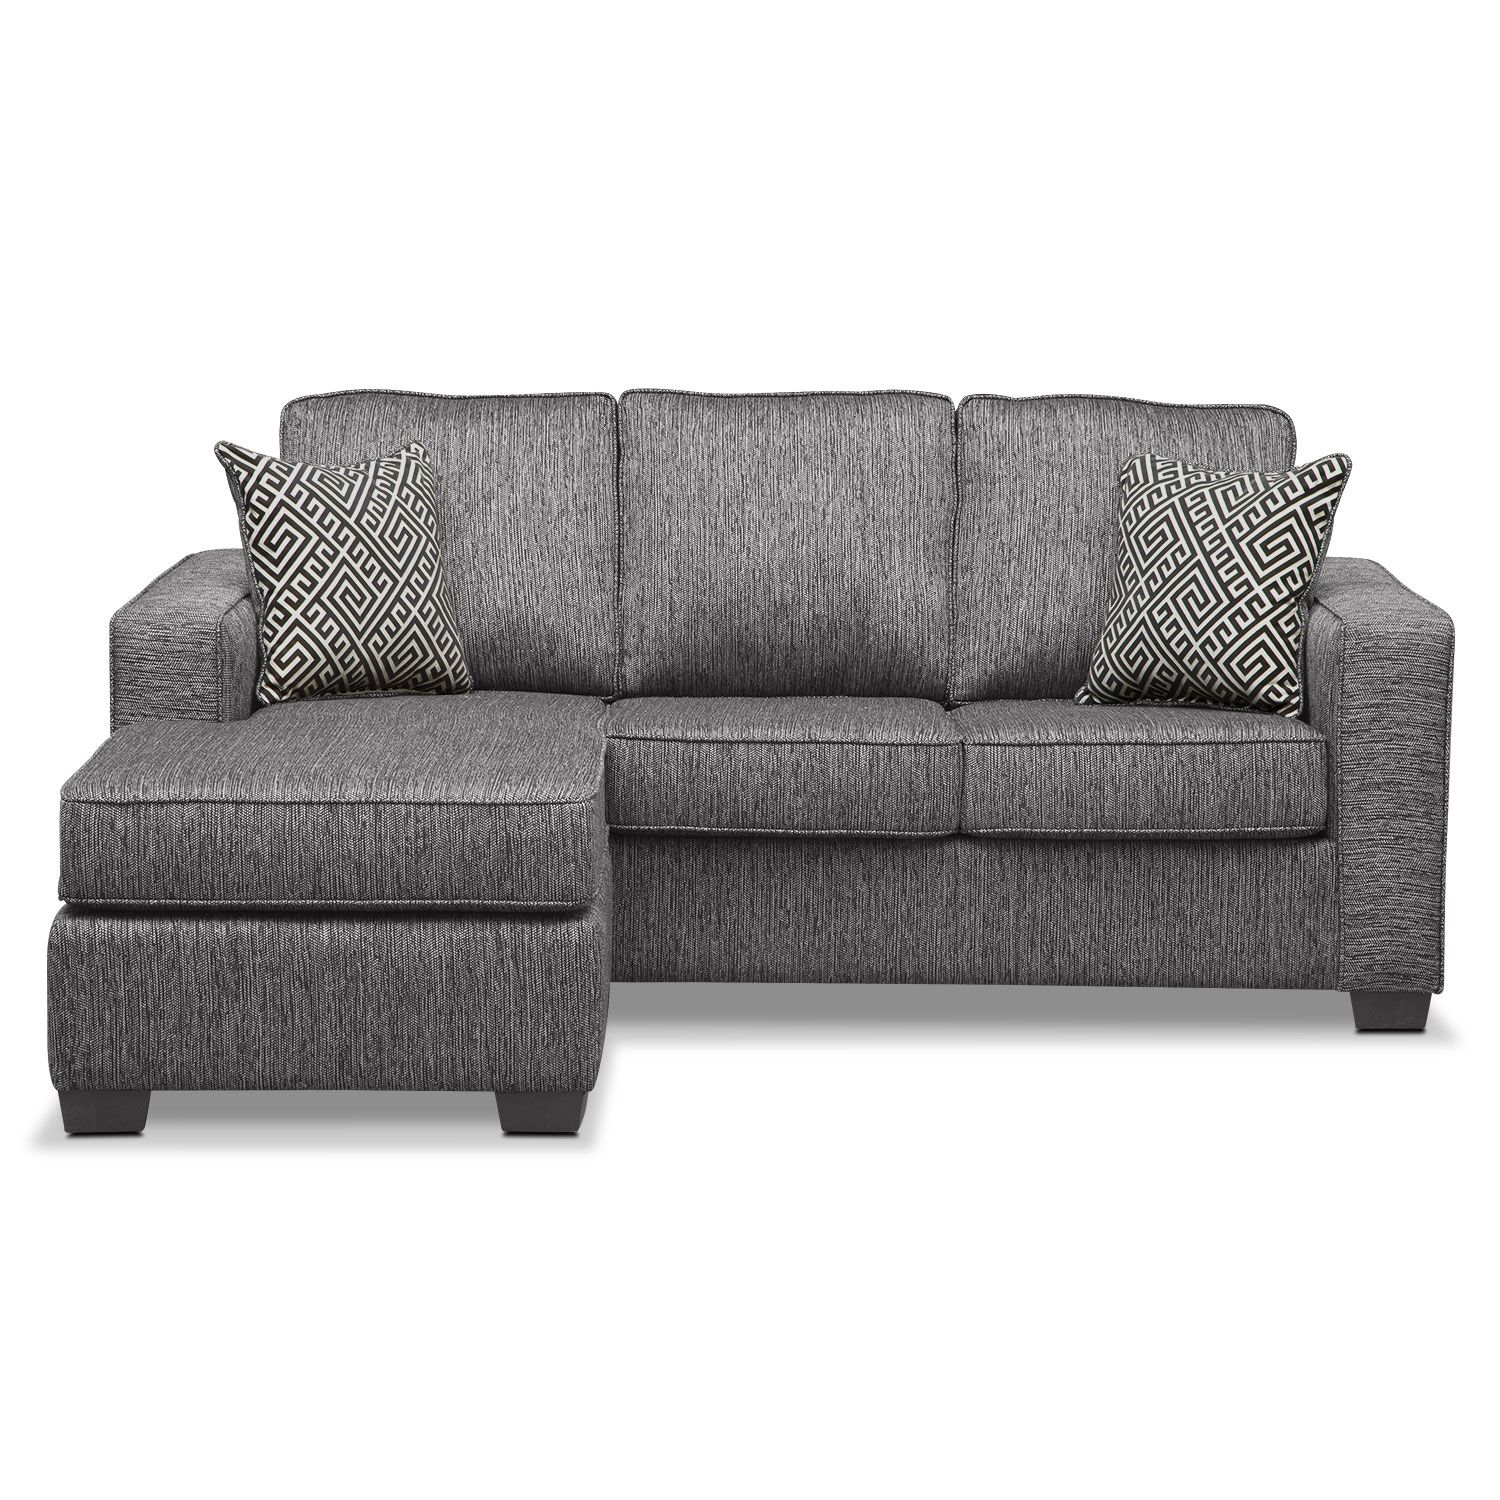 sterling sofa sectional leather and fabric charcoal queen memory foam sleeper w chaise